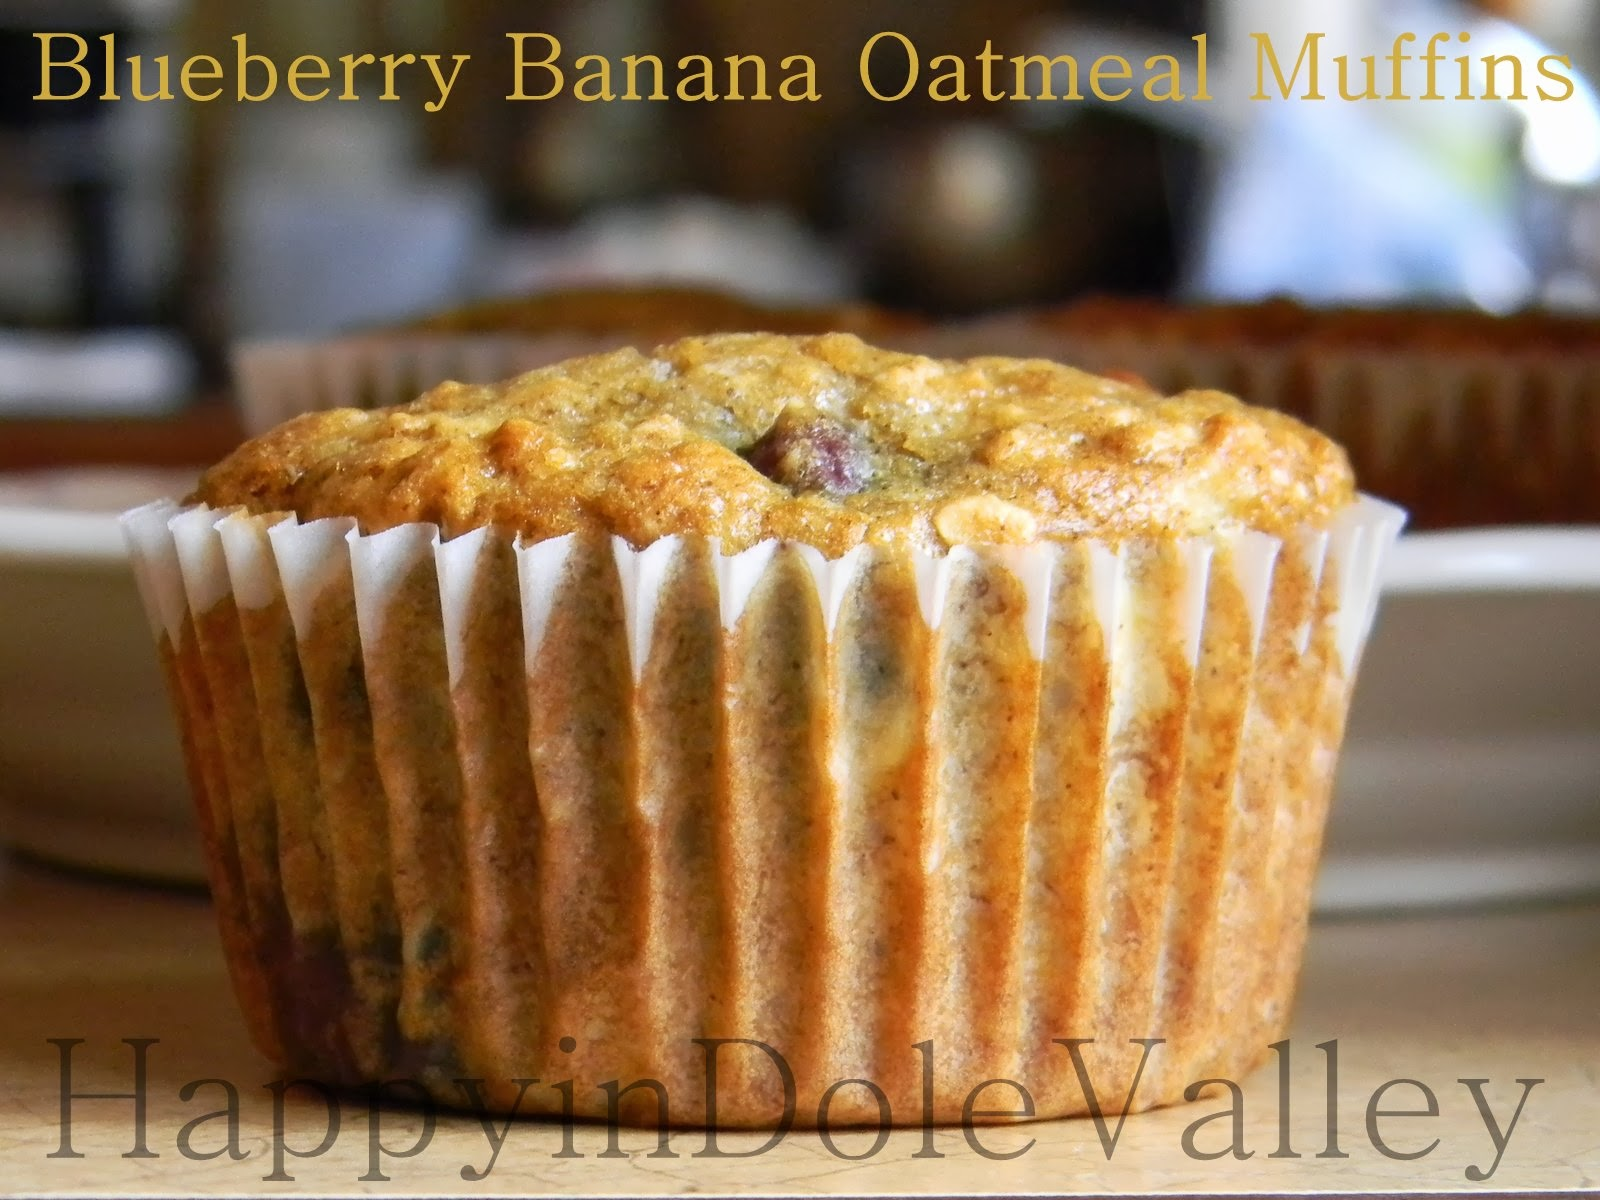 Happy in Dole Valley: Blueberry Banana Oatmeal Muffins {Muffin Monday}